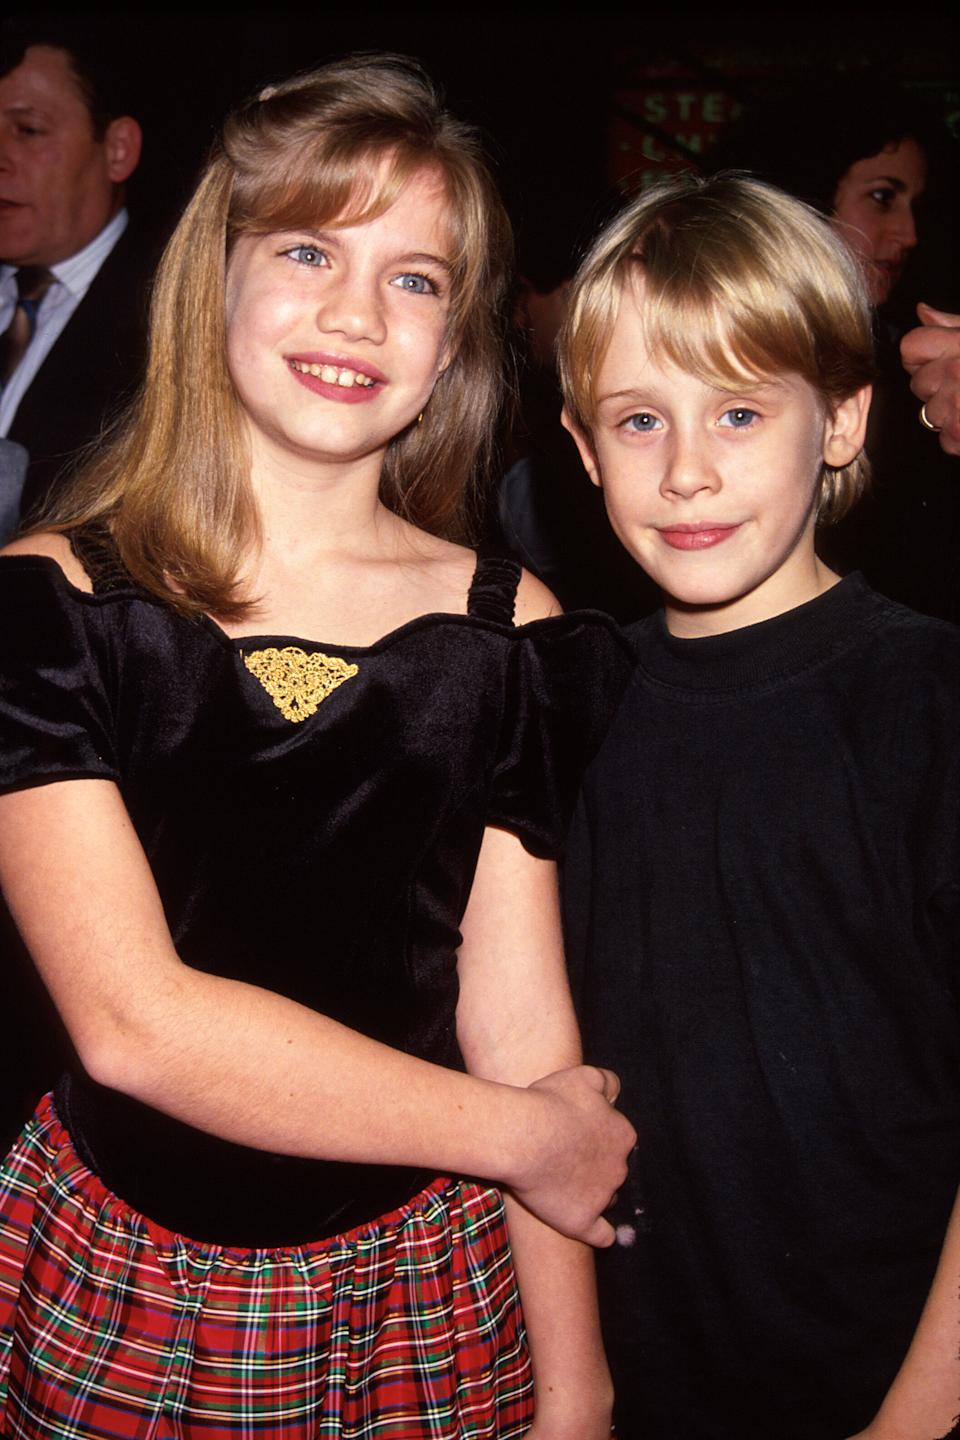 Actors Anna Chlumsky and Macaulay Culkin at film premiere of their My Girl. (Photo by Time Life Pictures/DMI/The LIFE Picture Collection via Getty Images)